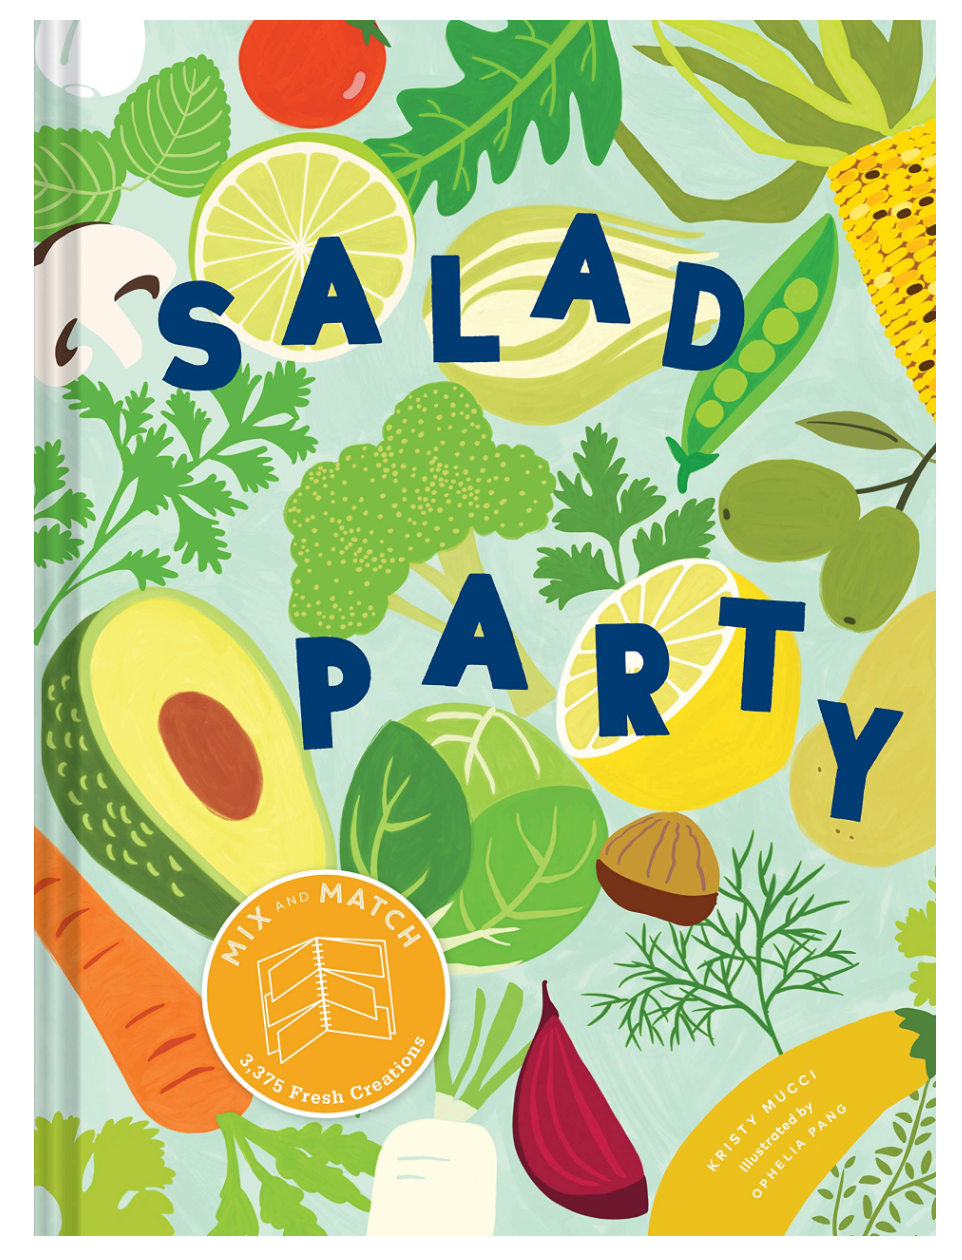 Salad Party Cookbook